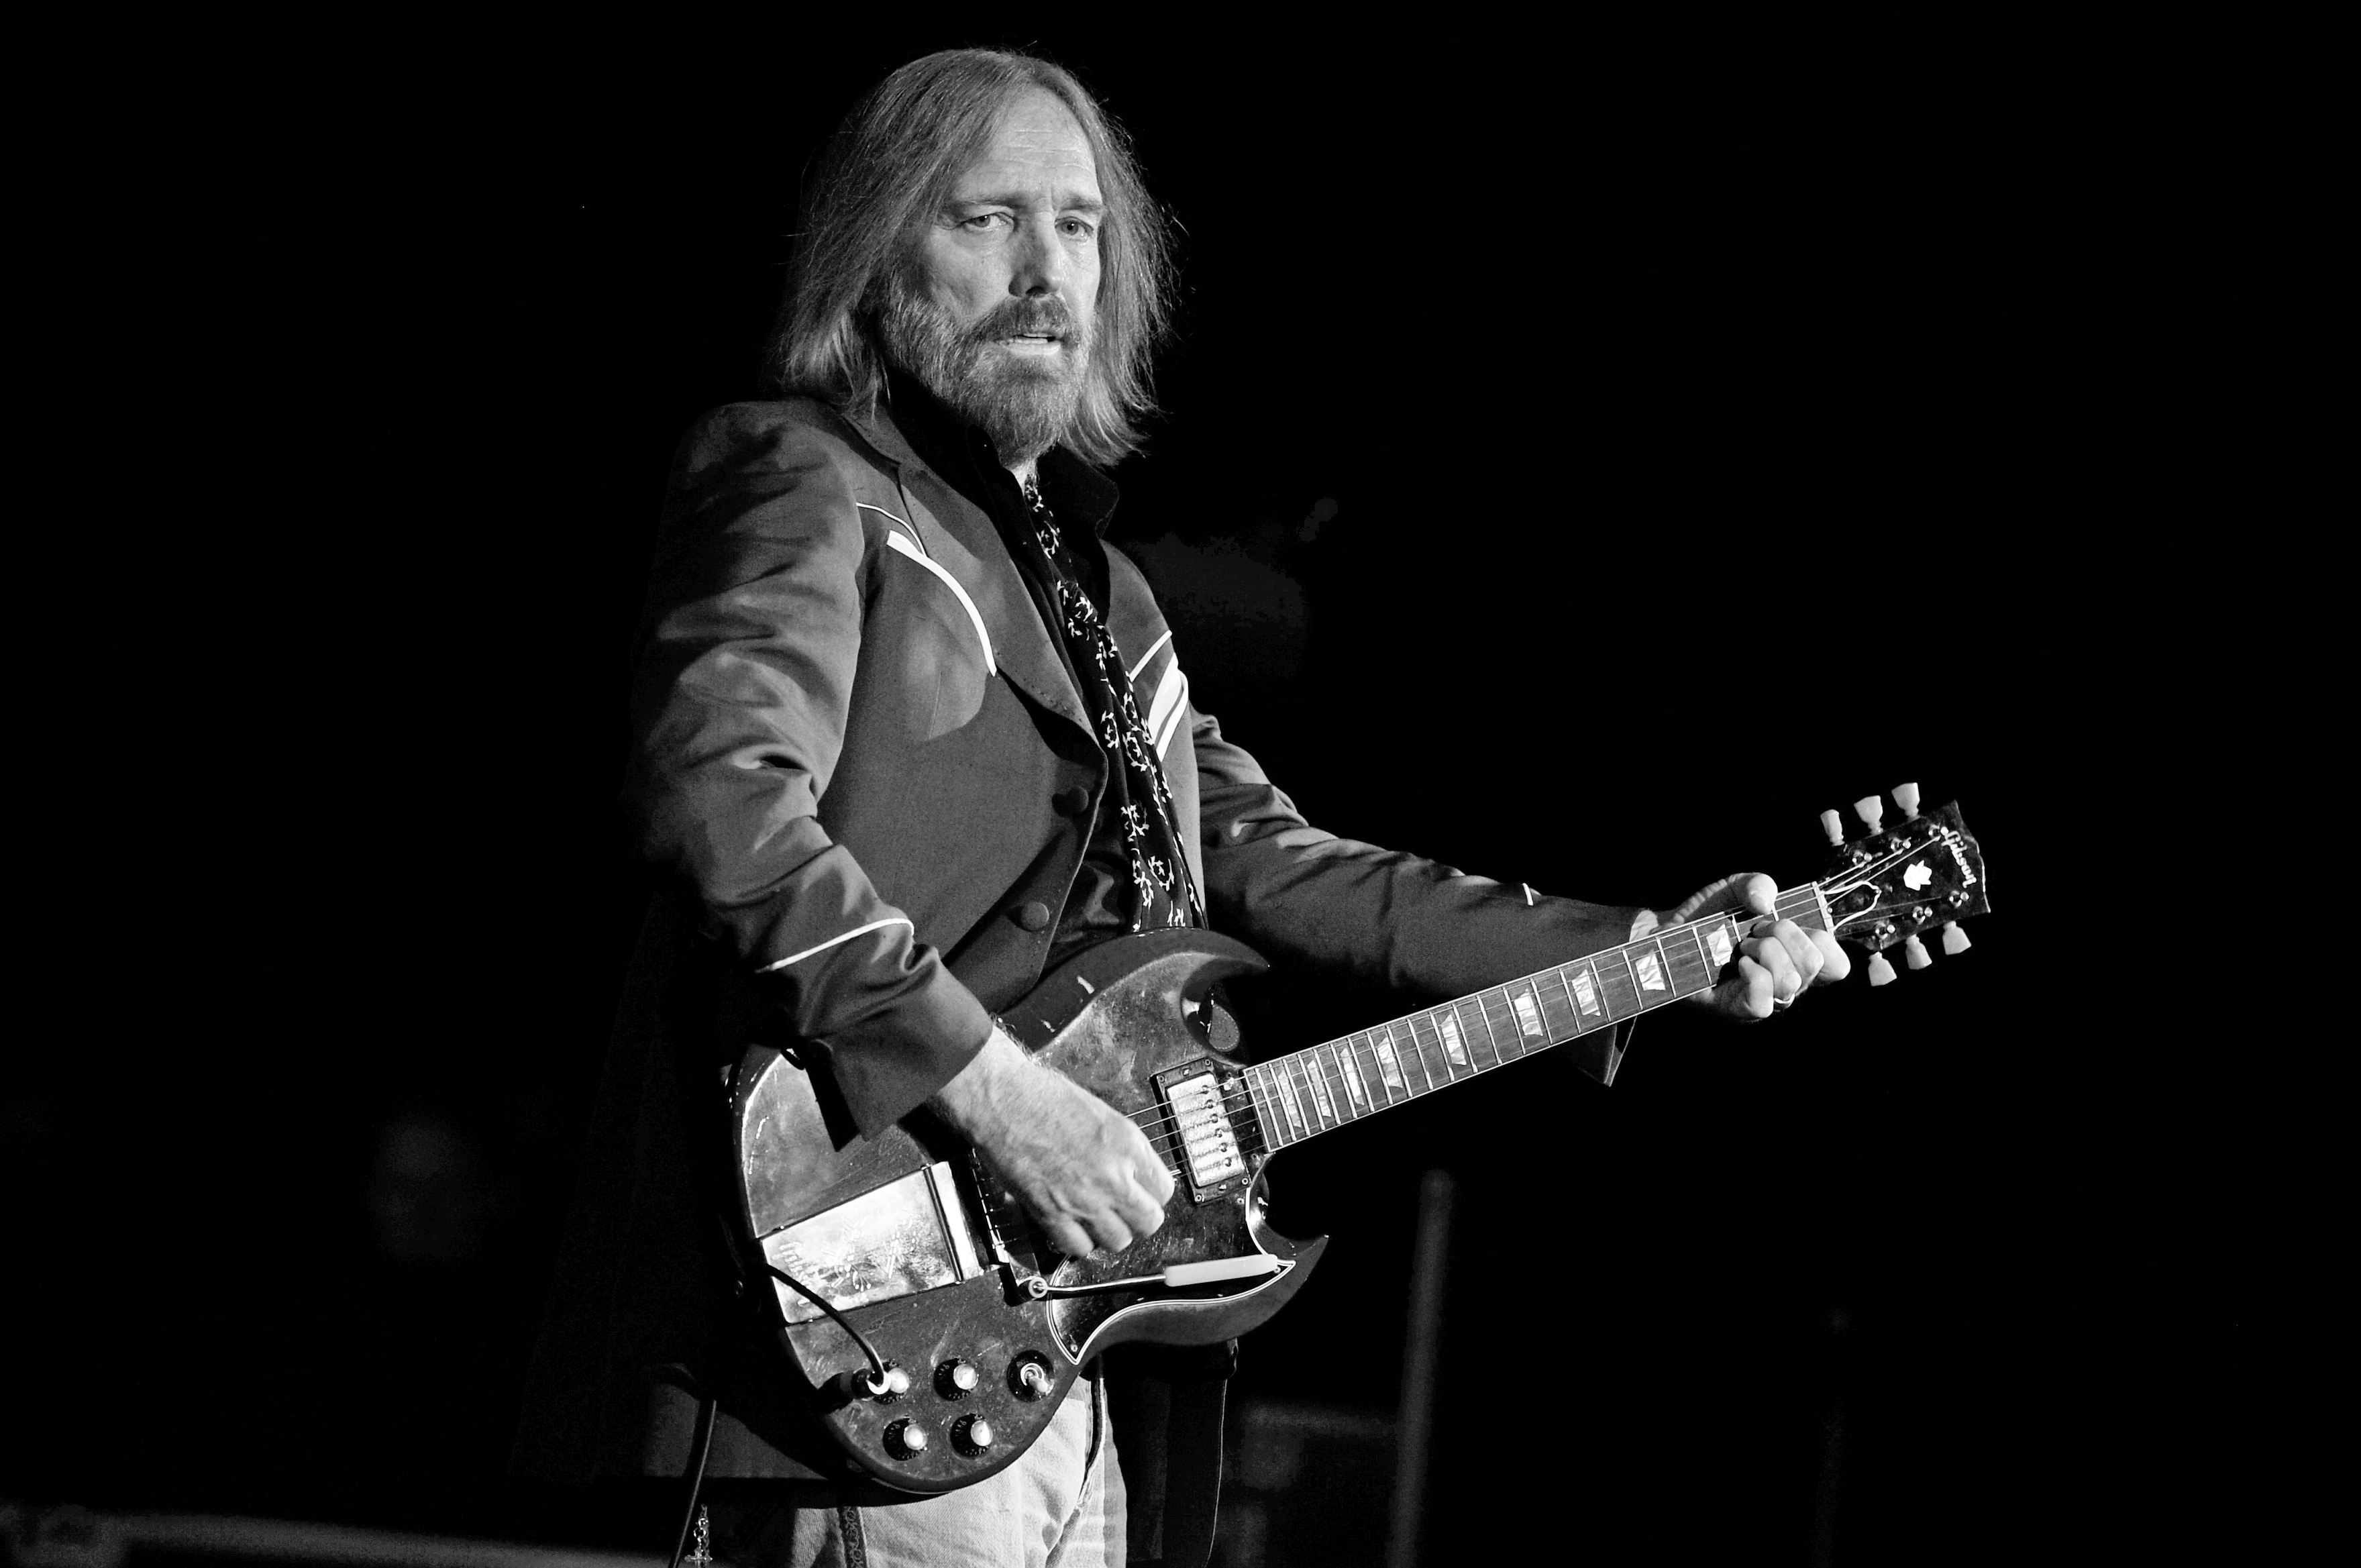 Tom Petty On Past Confederate Flag Use It Was Downright Stupid